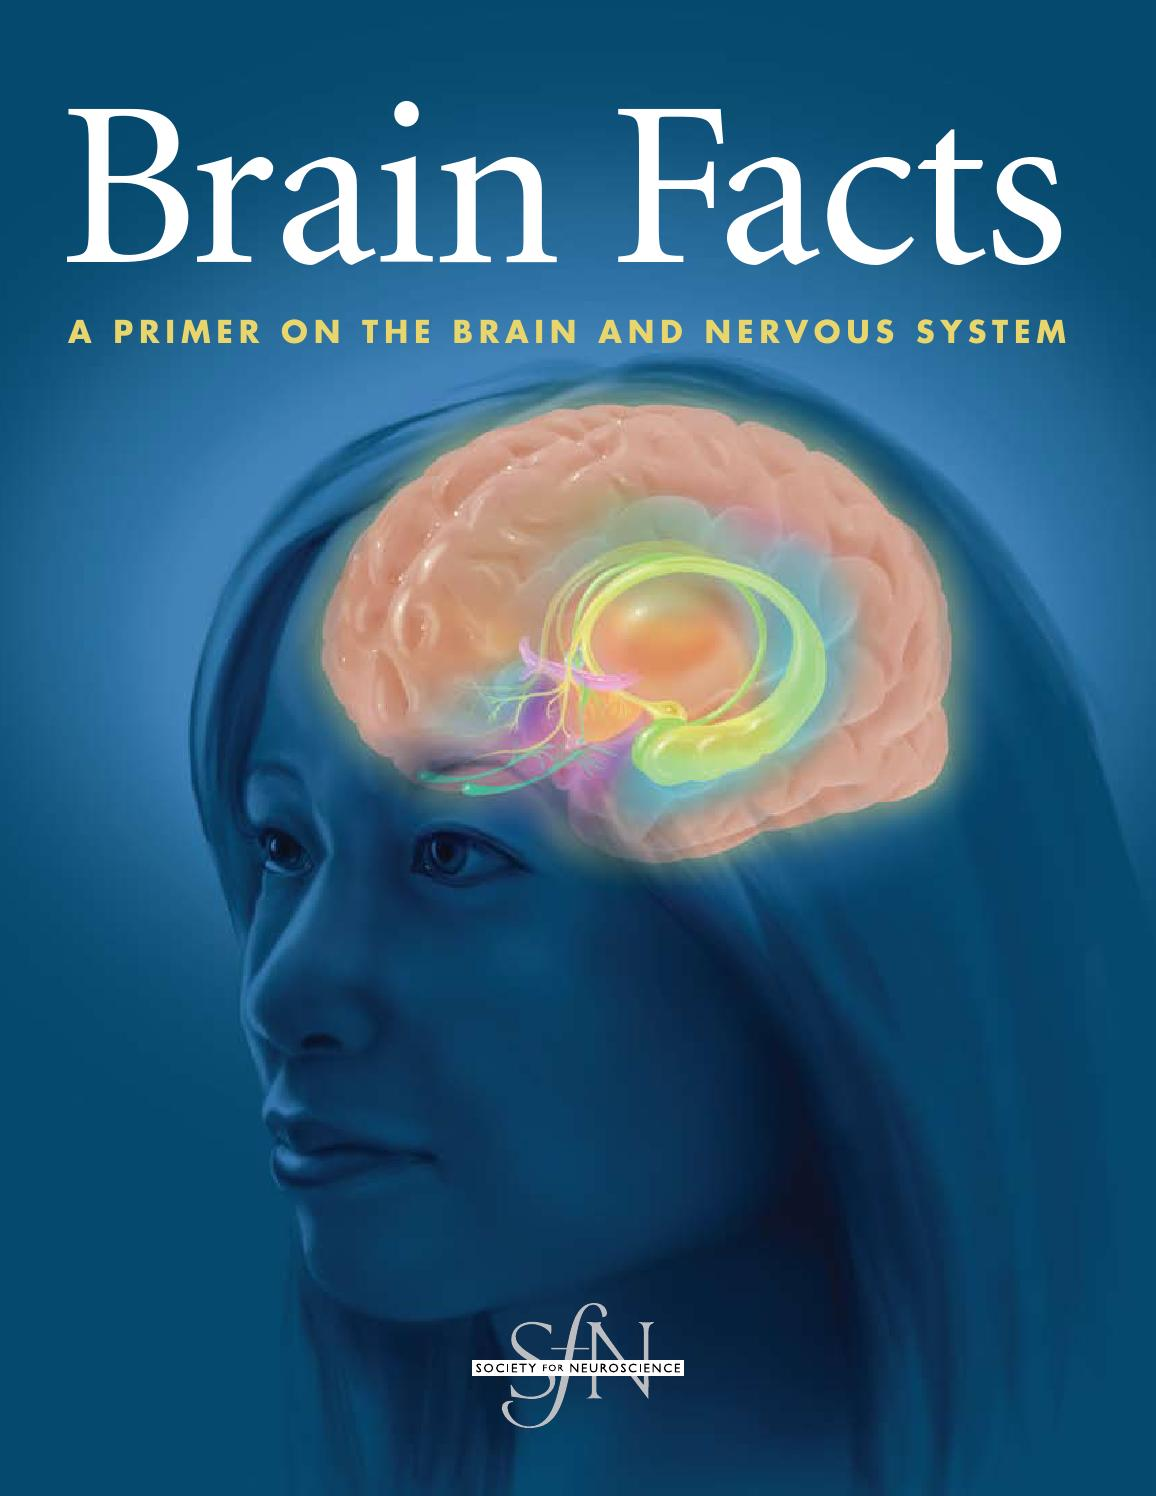 brain facts by chris robison